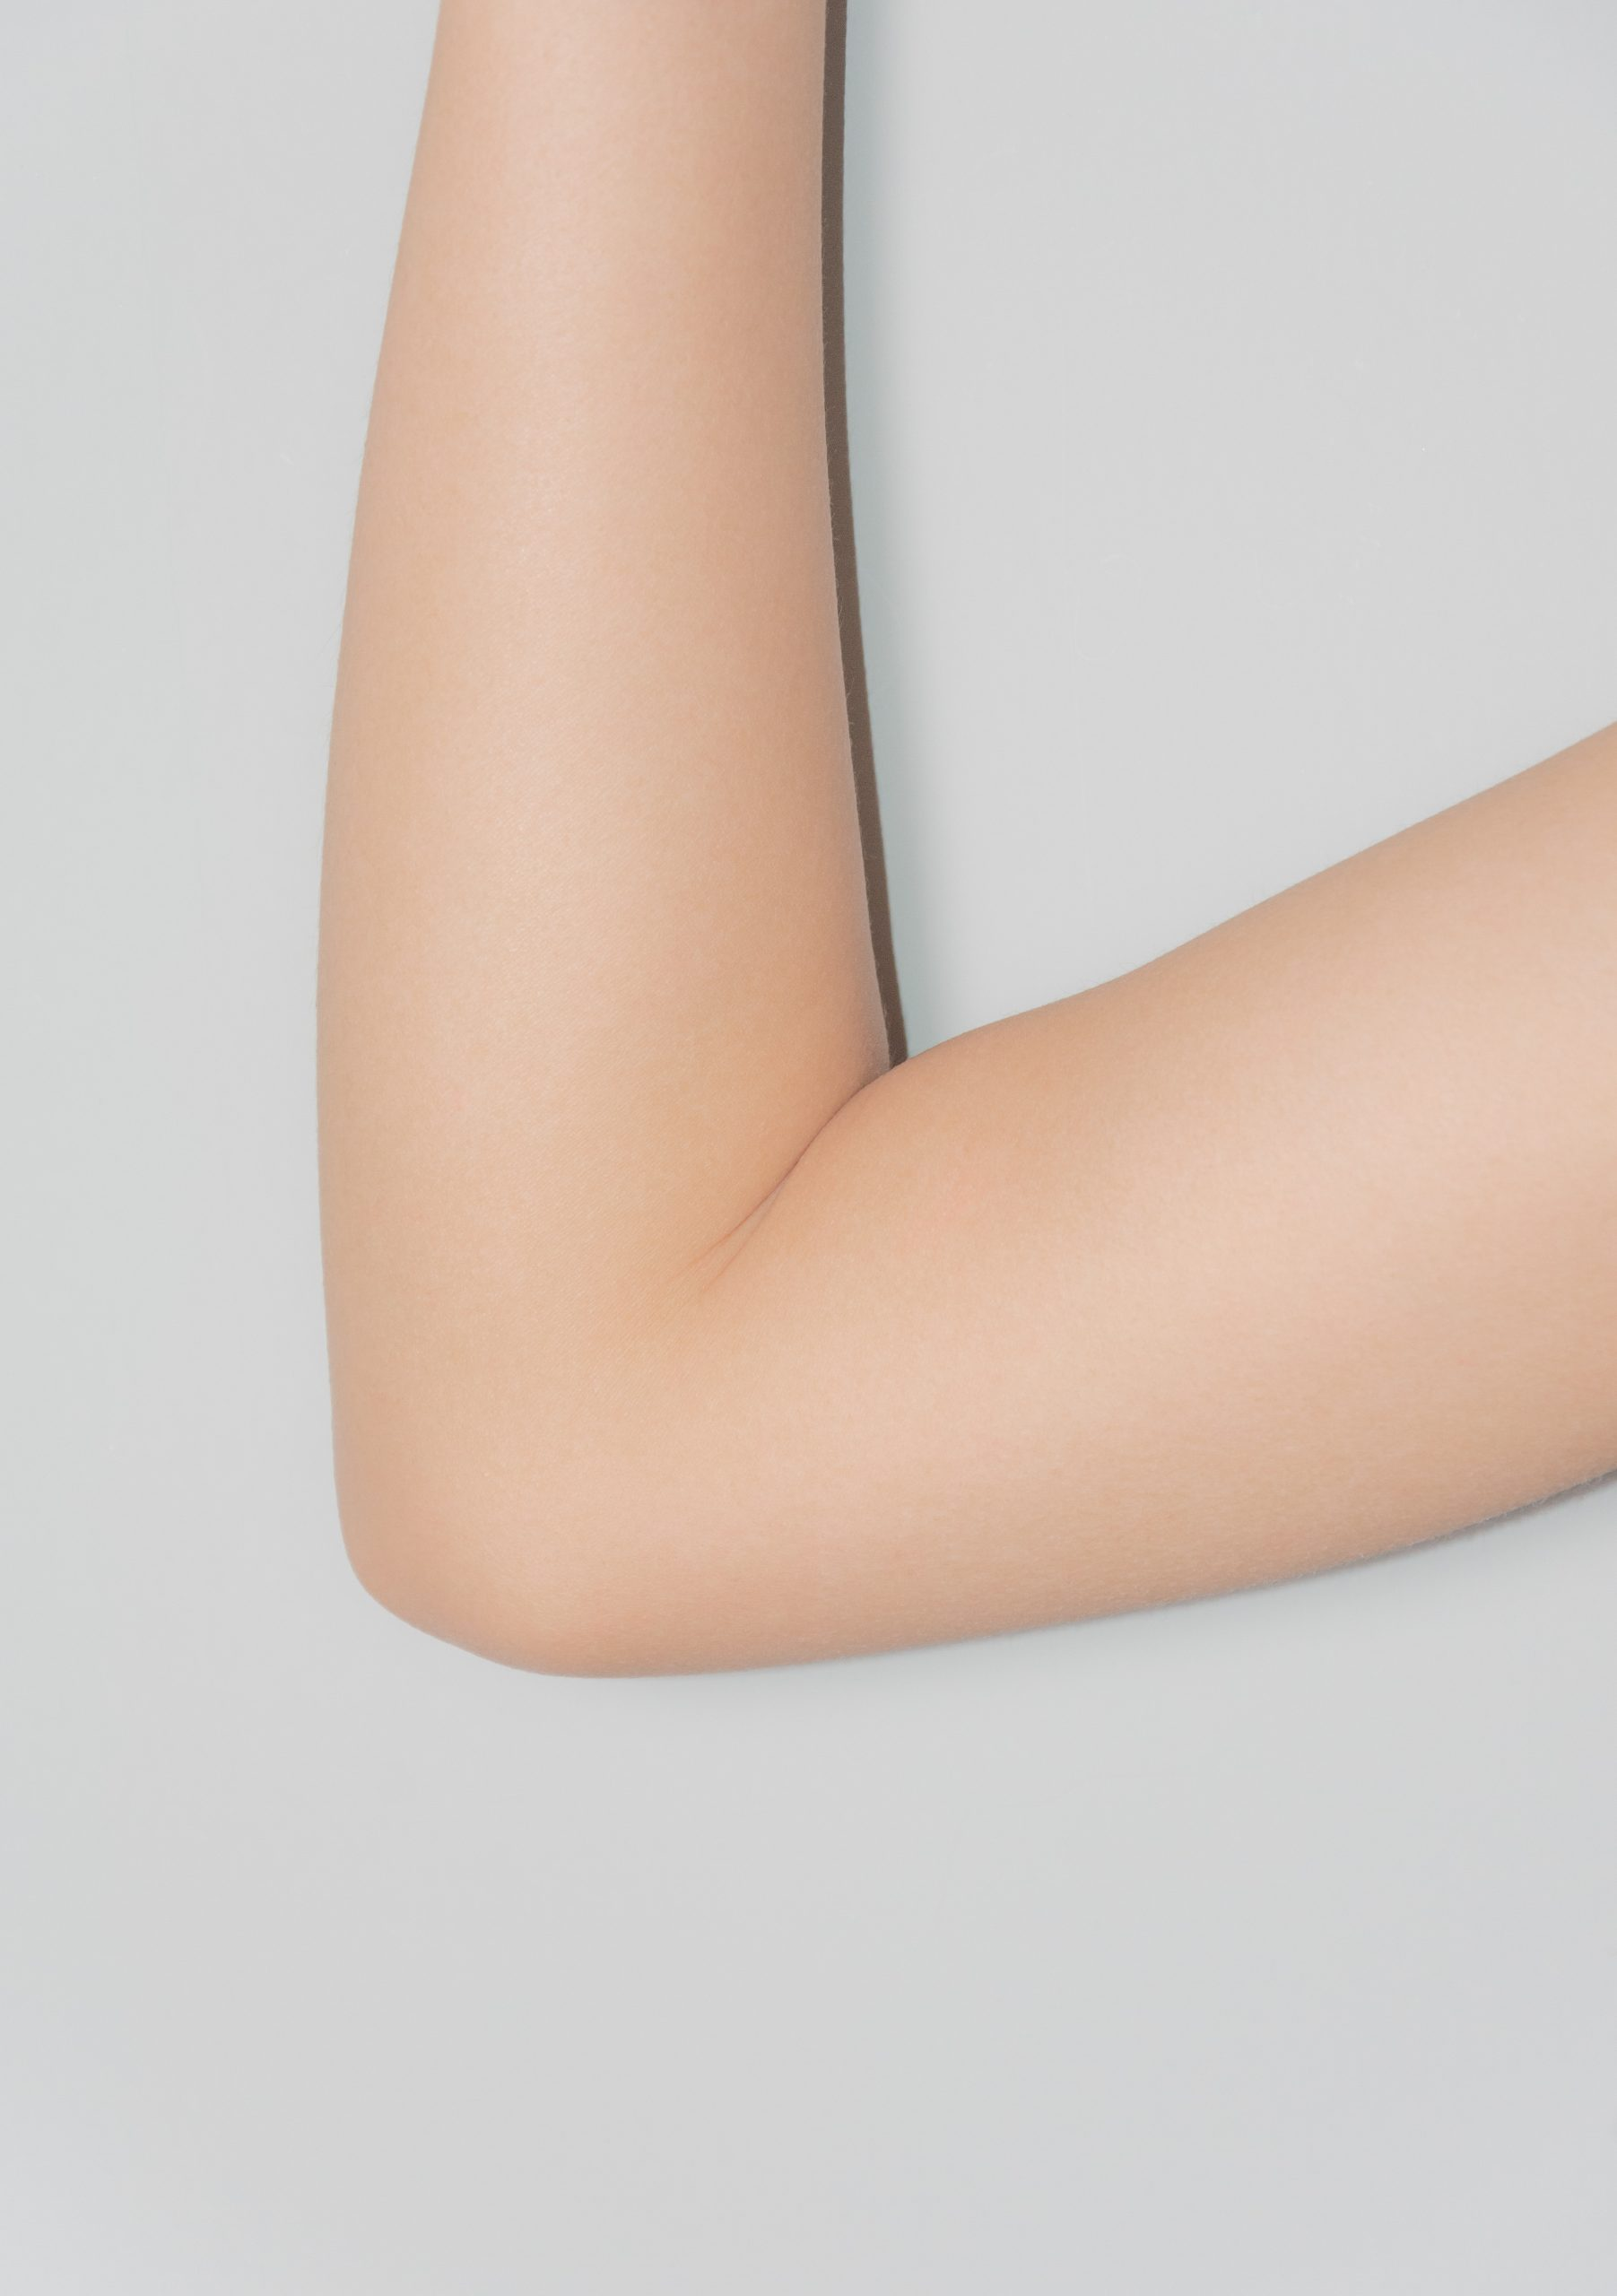 What arm does a compression sleeve go on?